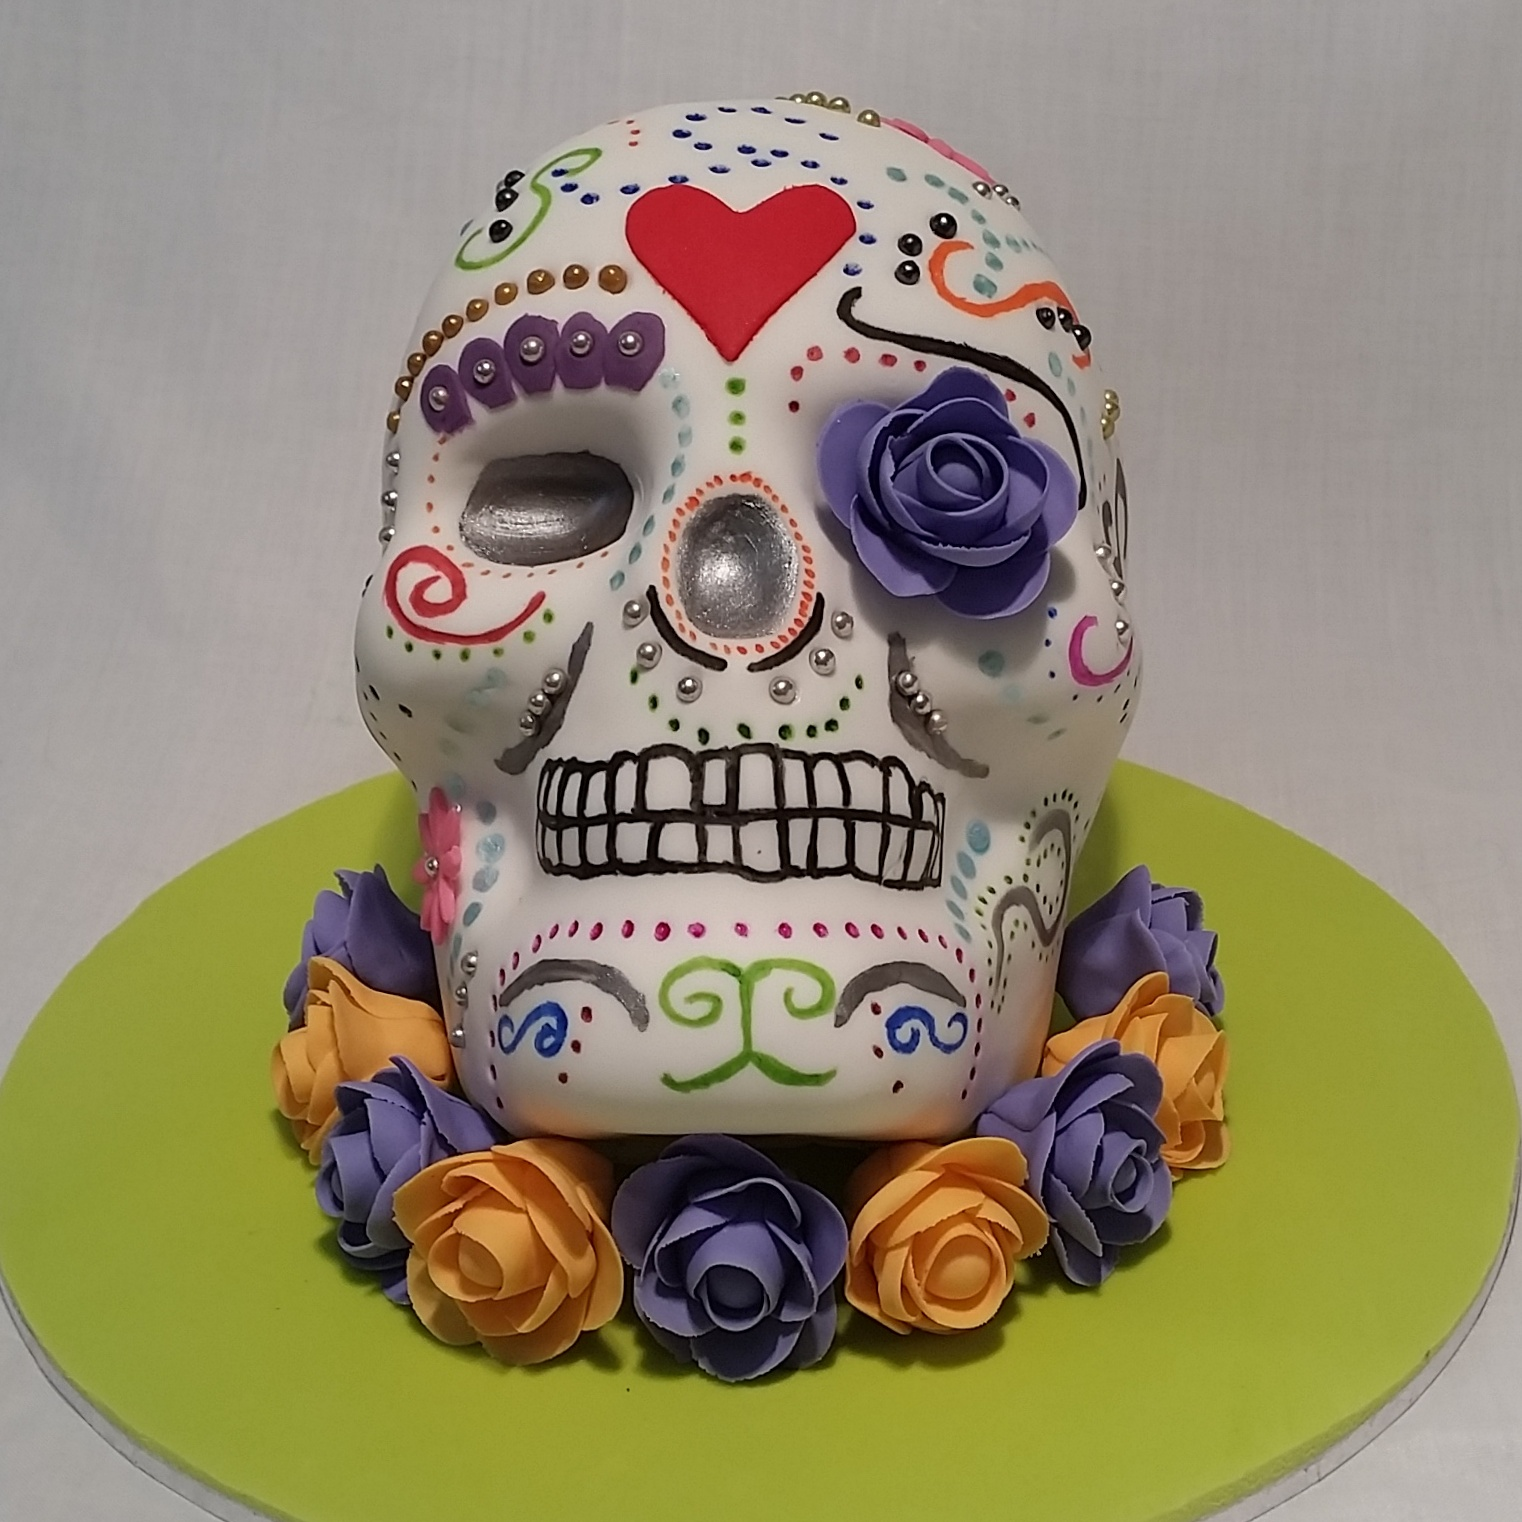 I Absolutely Love This Cake Was Asked To Make A Crazy Halloween For Girls 11th Birthday The 3D Skull Marbled Orange